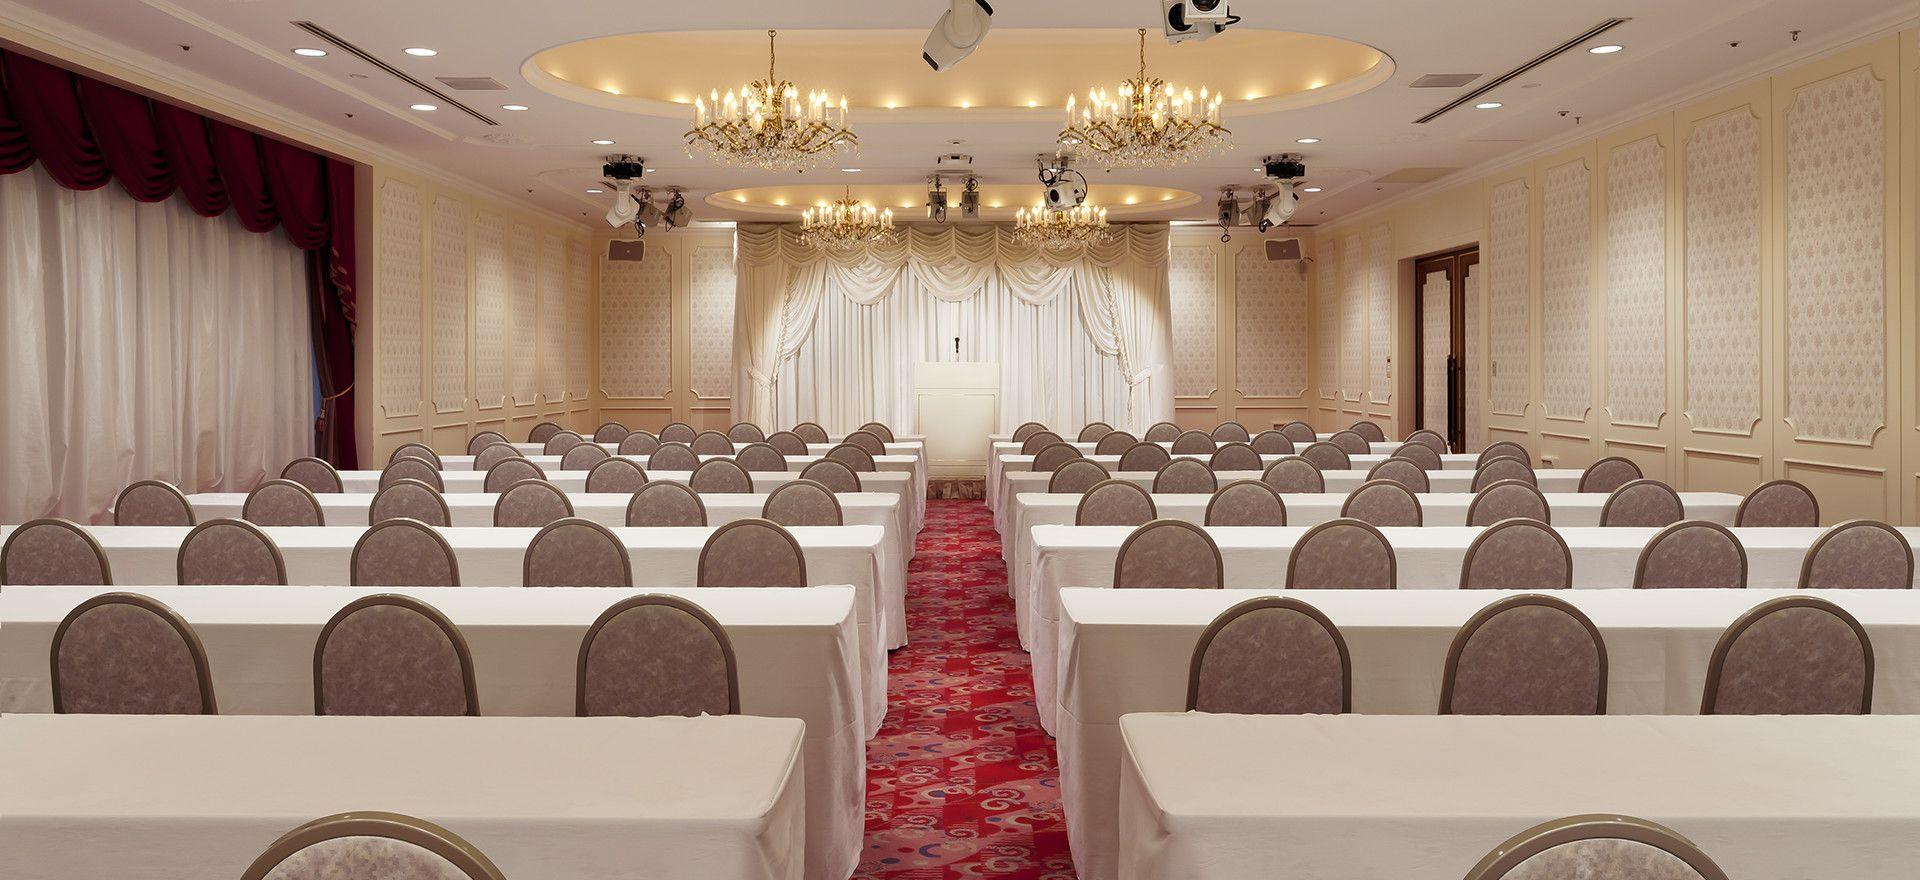 Sango|List of rooms |Parties and conferences|Hotel Grand ... on mu map, northern europe map, ca map, central europe map, mco map, western europe map, osi map,